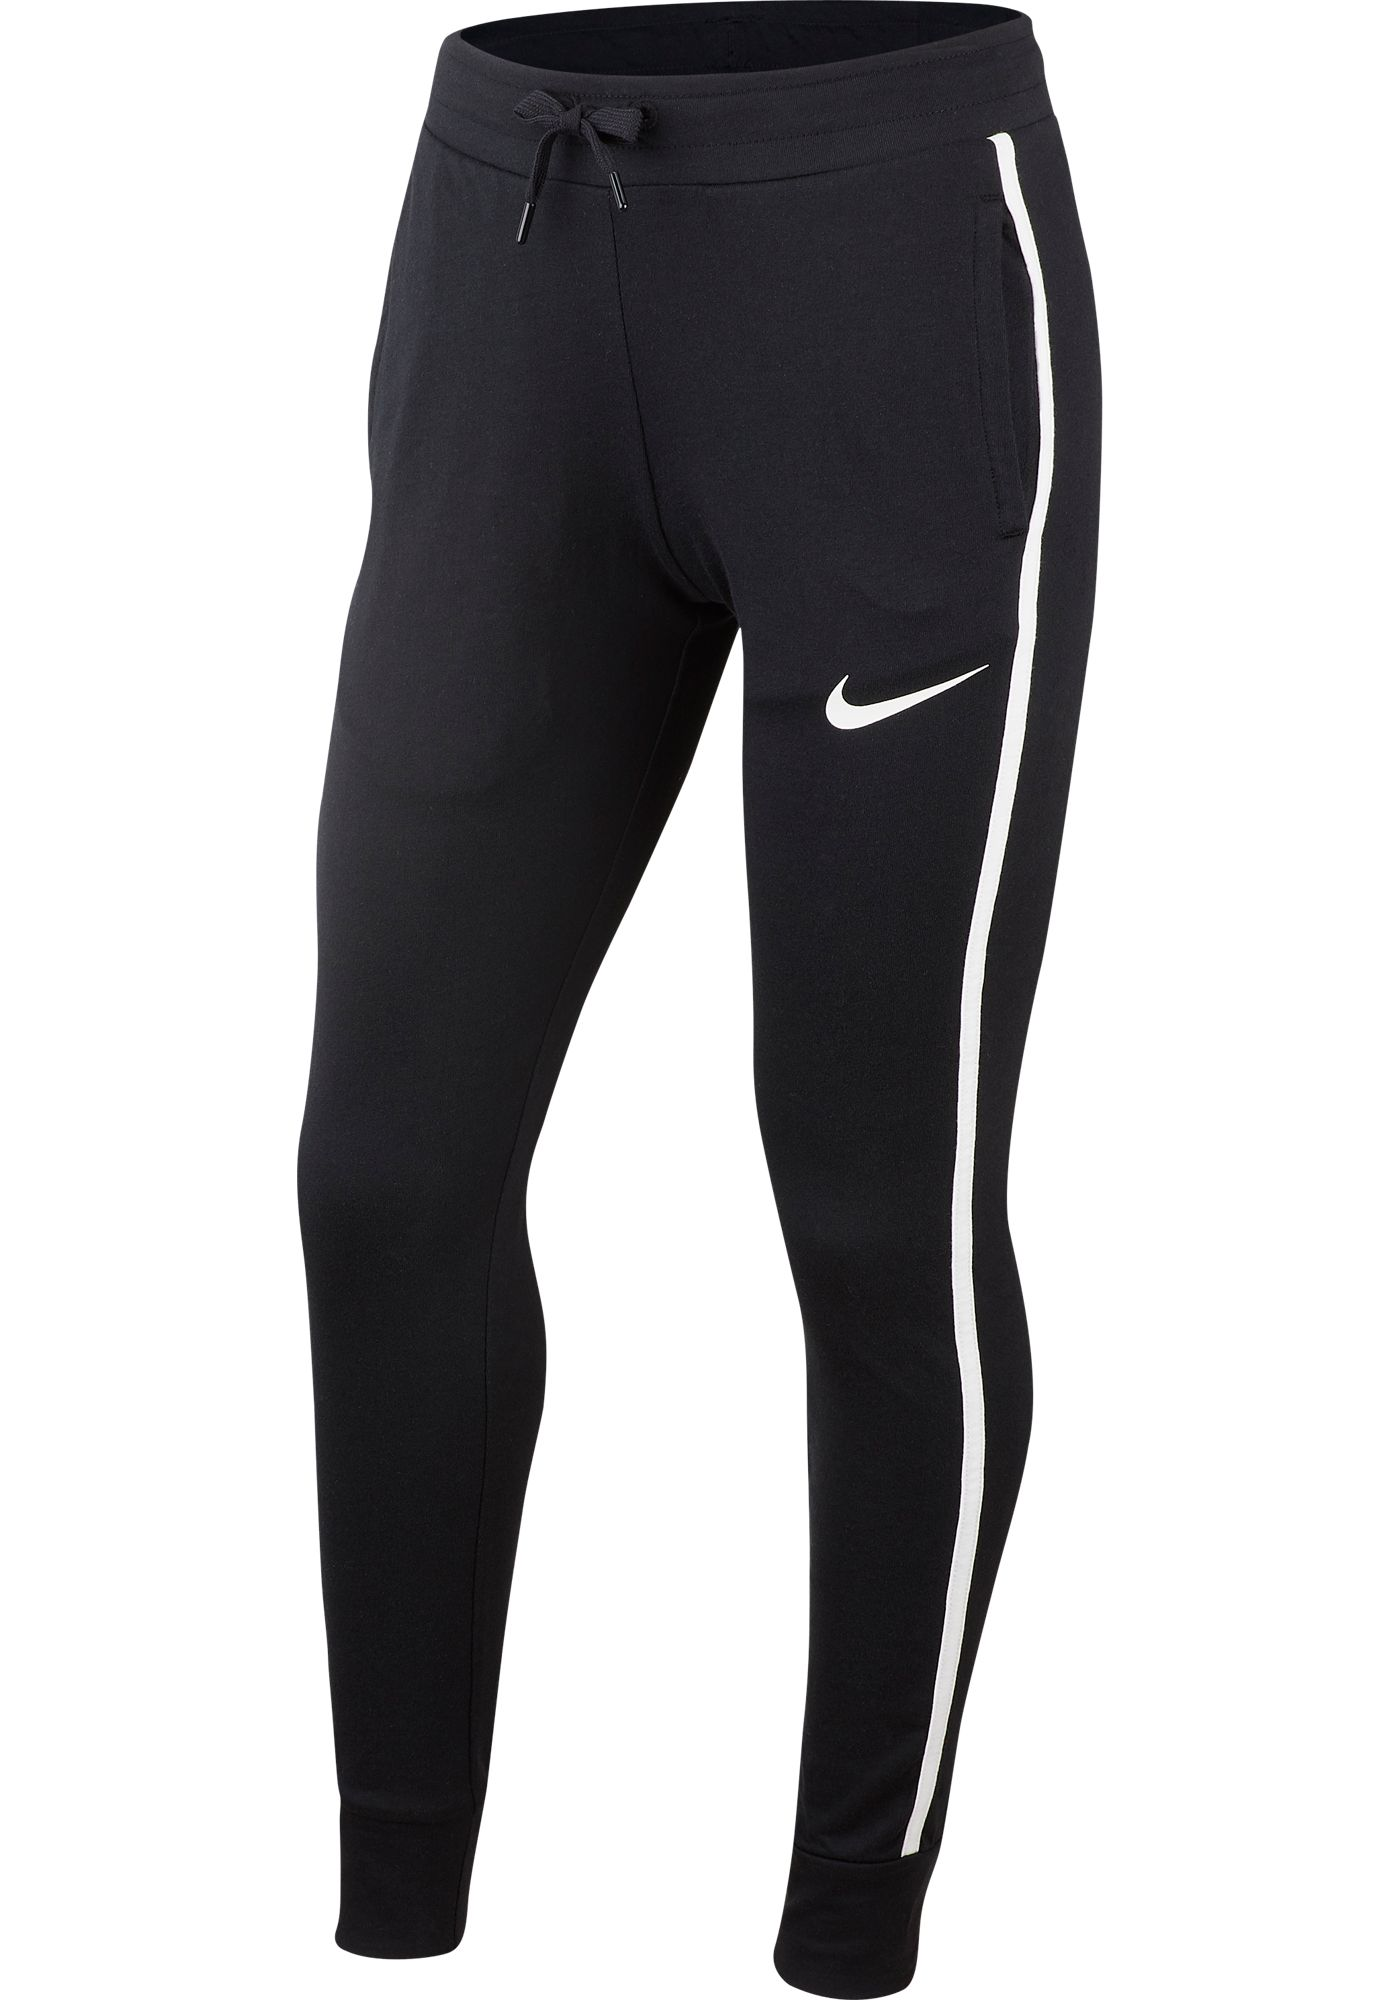 Nike Girls' Sportswear Jersey Pants